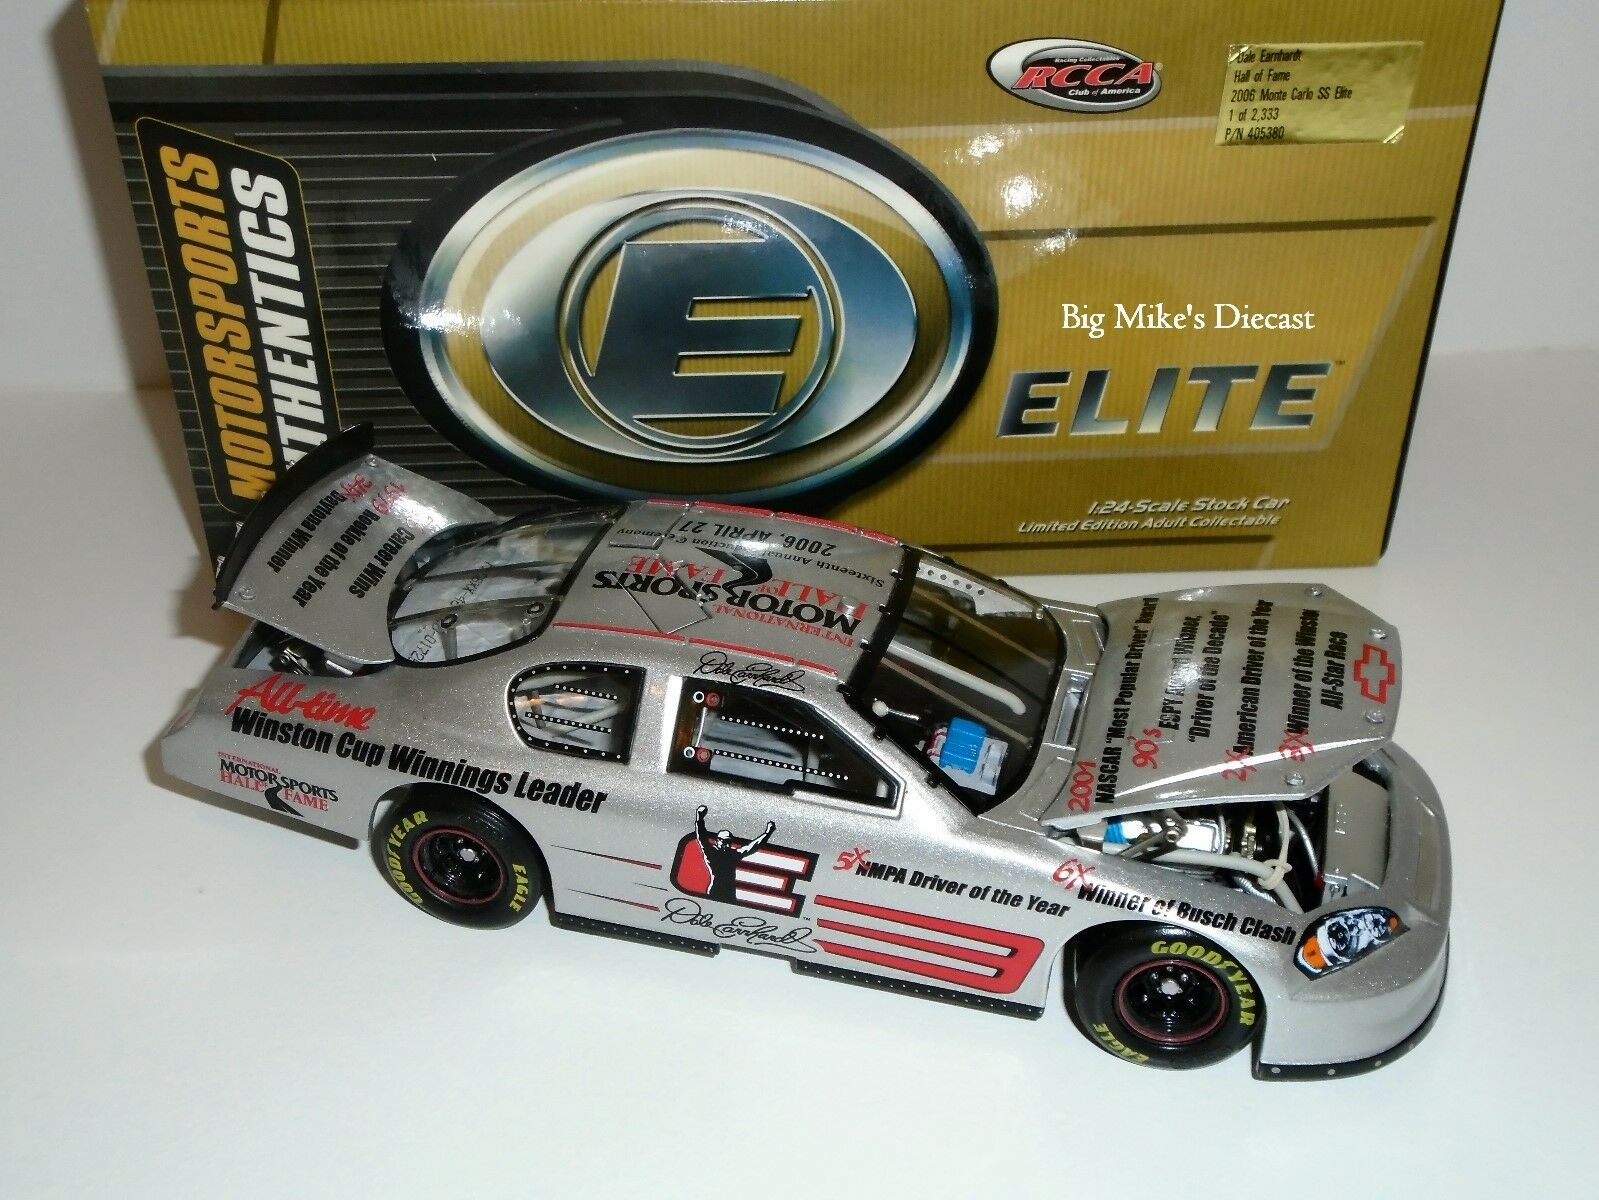 2006 Dale Earnhardt Hall of Fame 1 24 Scale ELITE Diecast